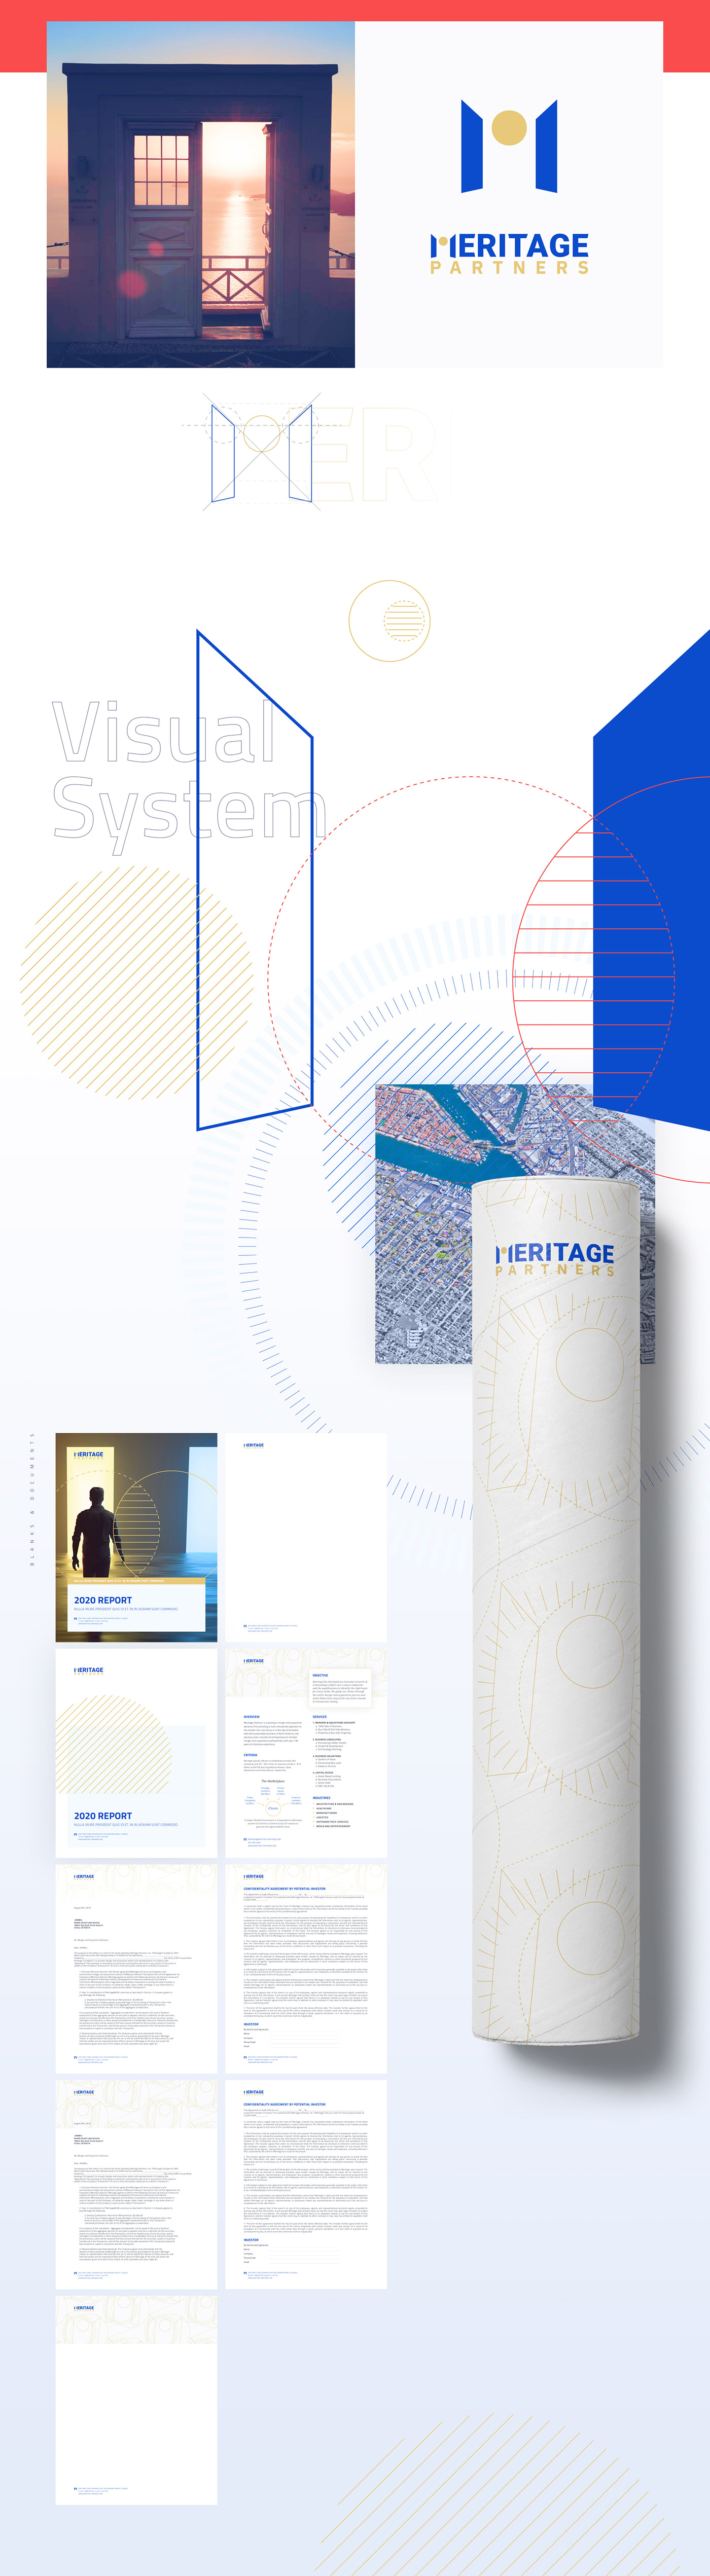 Tube, blanks, documents, presentations, pattern as a part of rebranding process for MeritagePartners